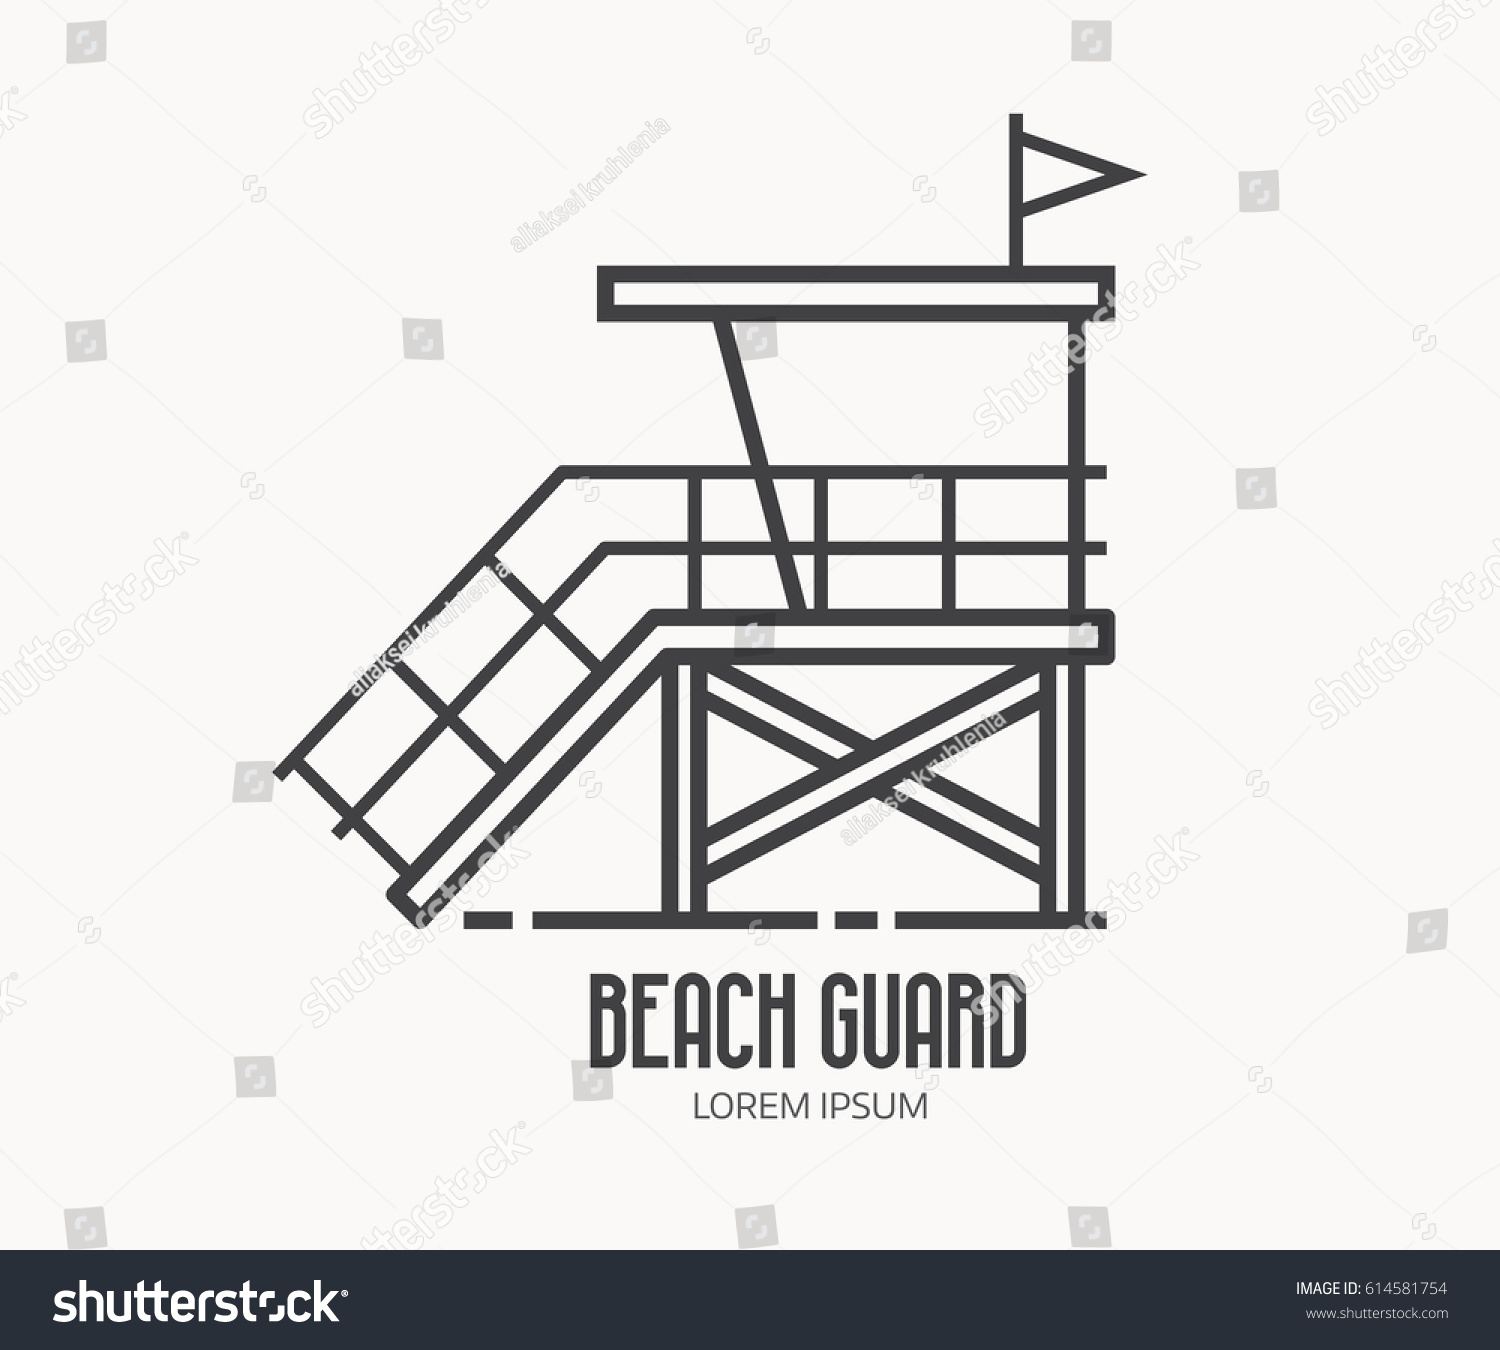 Security Hut Symbol: Beach Lifeguard Logo Thin Line Design Stock Vector